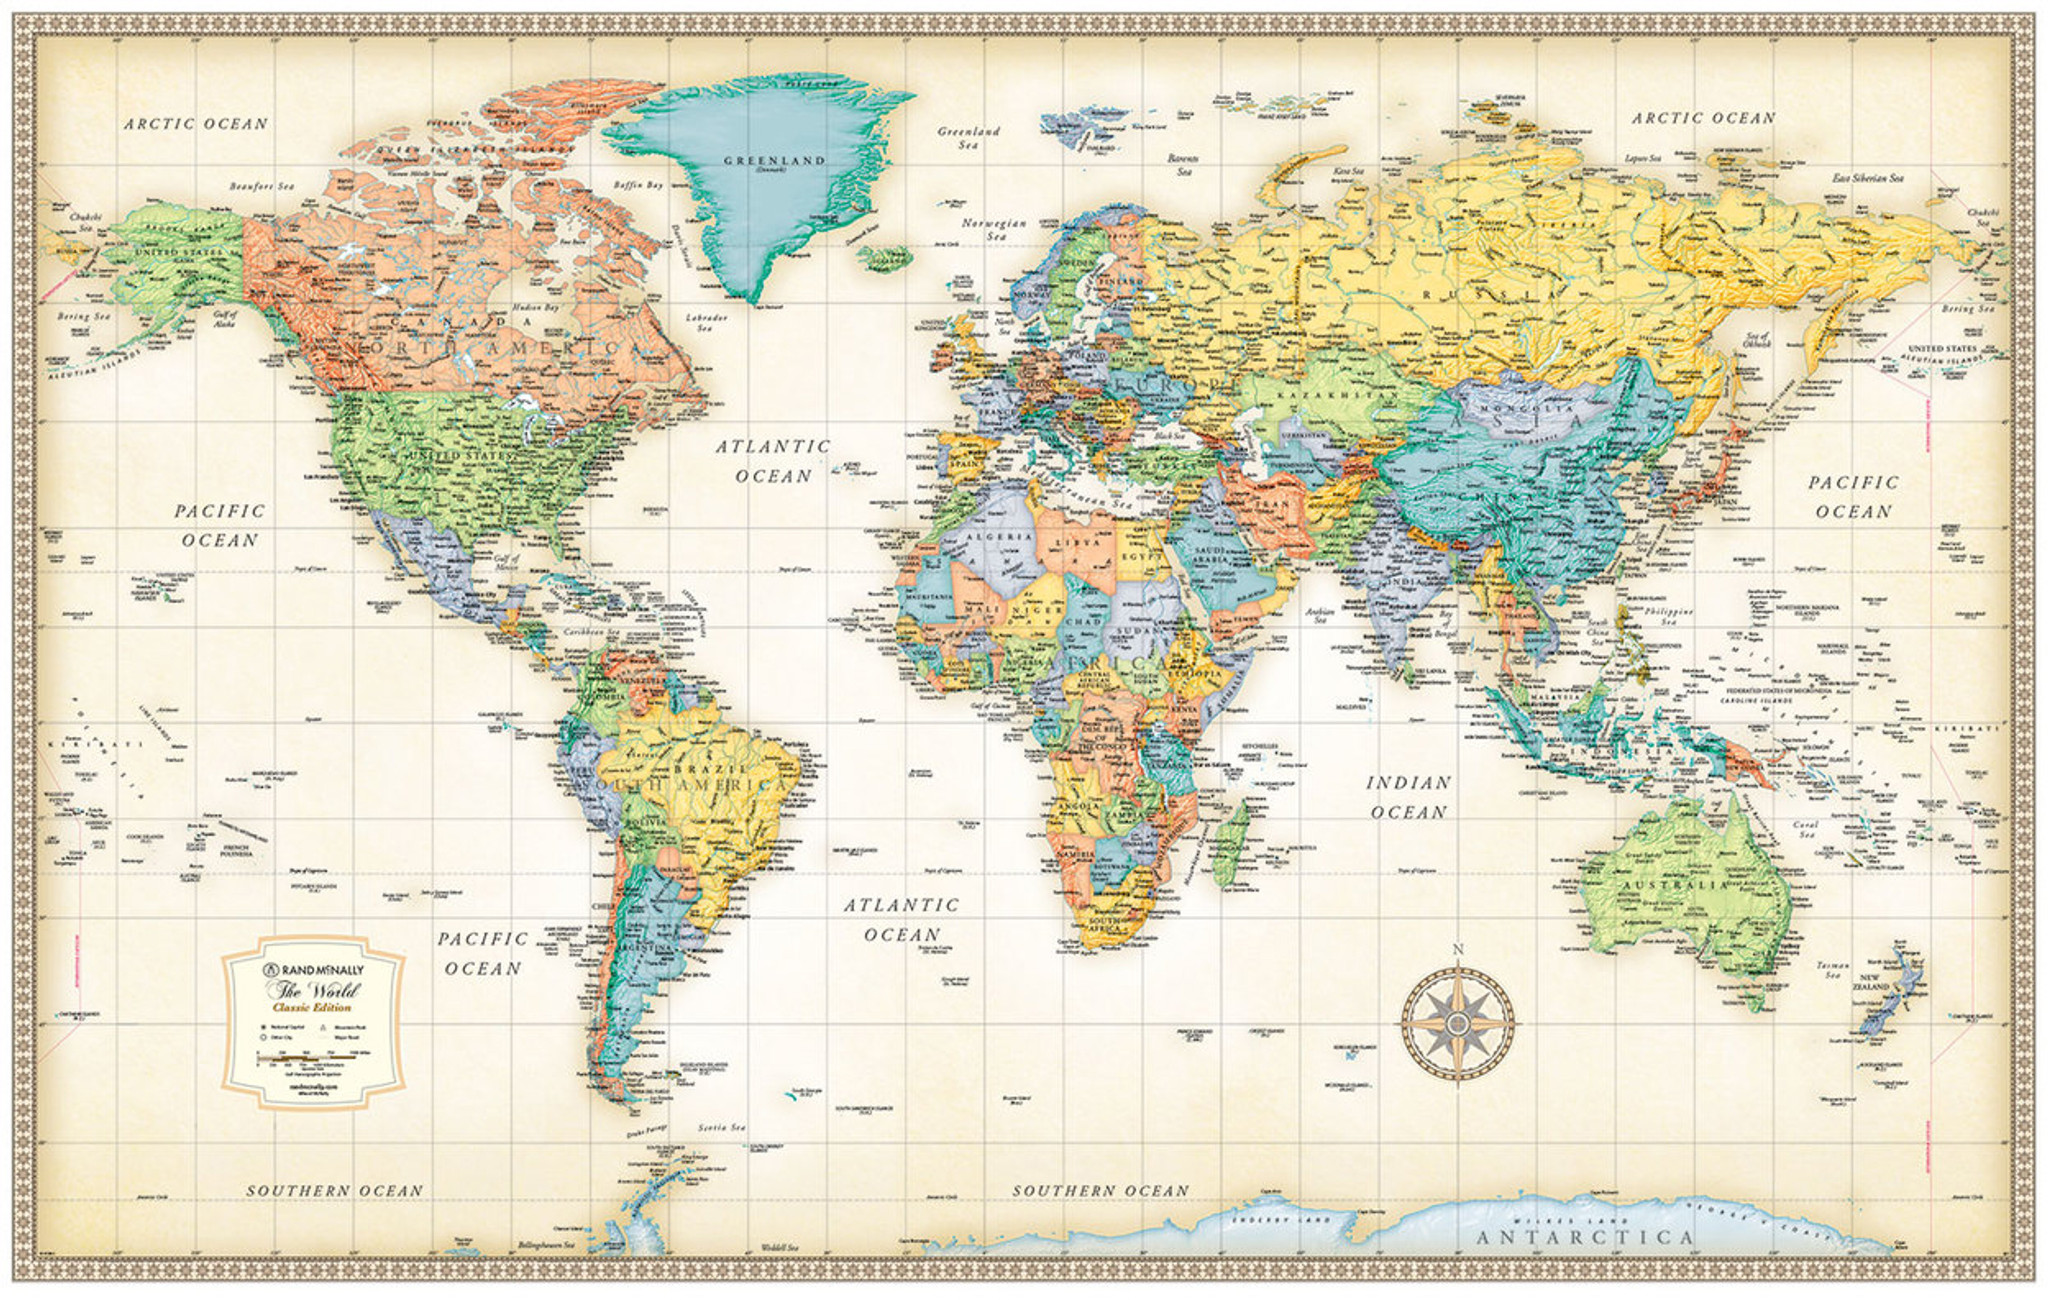 Maps Atlases Wall Maps Page Rand McNally Store - Rand mcnally us wall map